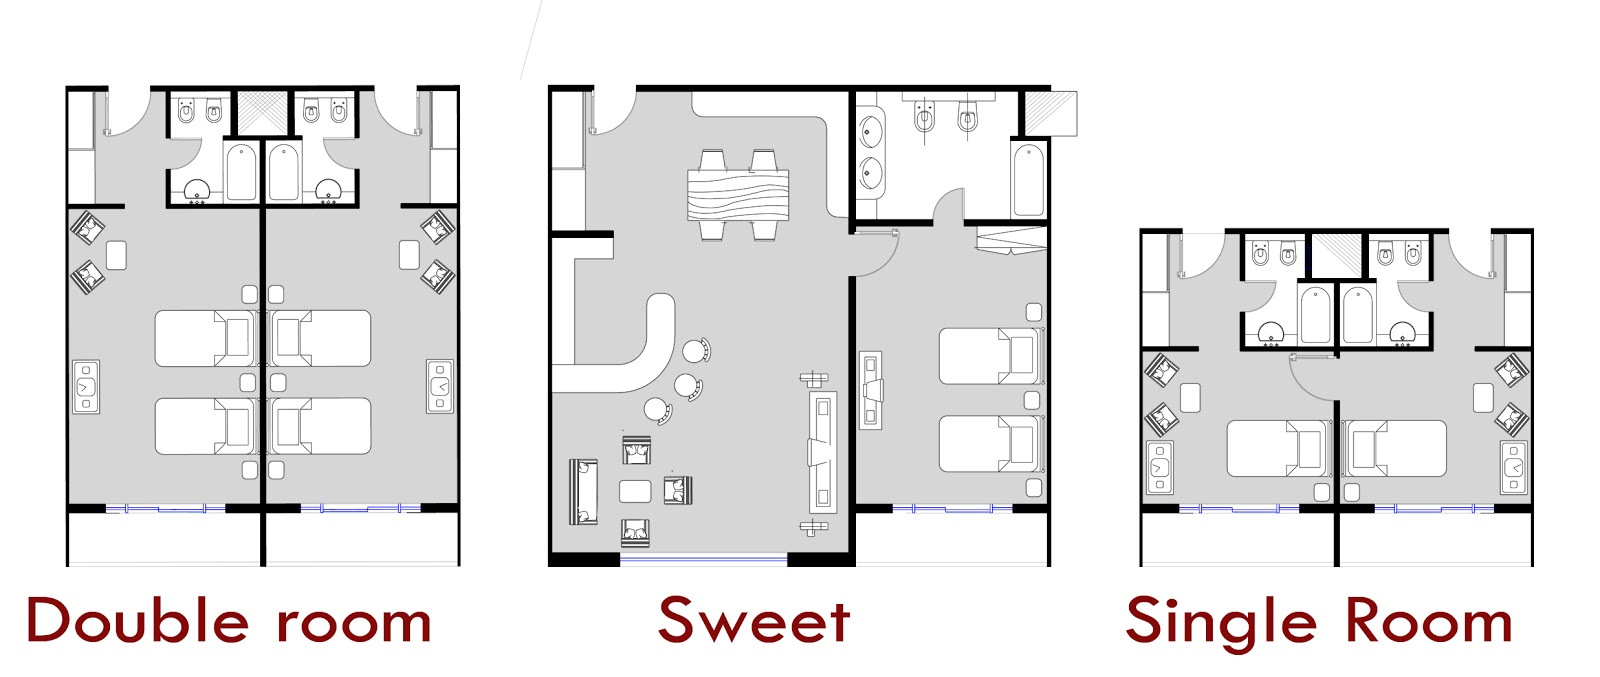 Room Layouts Simple Hotel Room Plans & Layouts Olive Garden Interior Inspiration